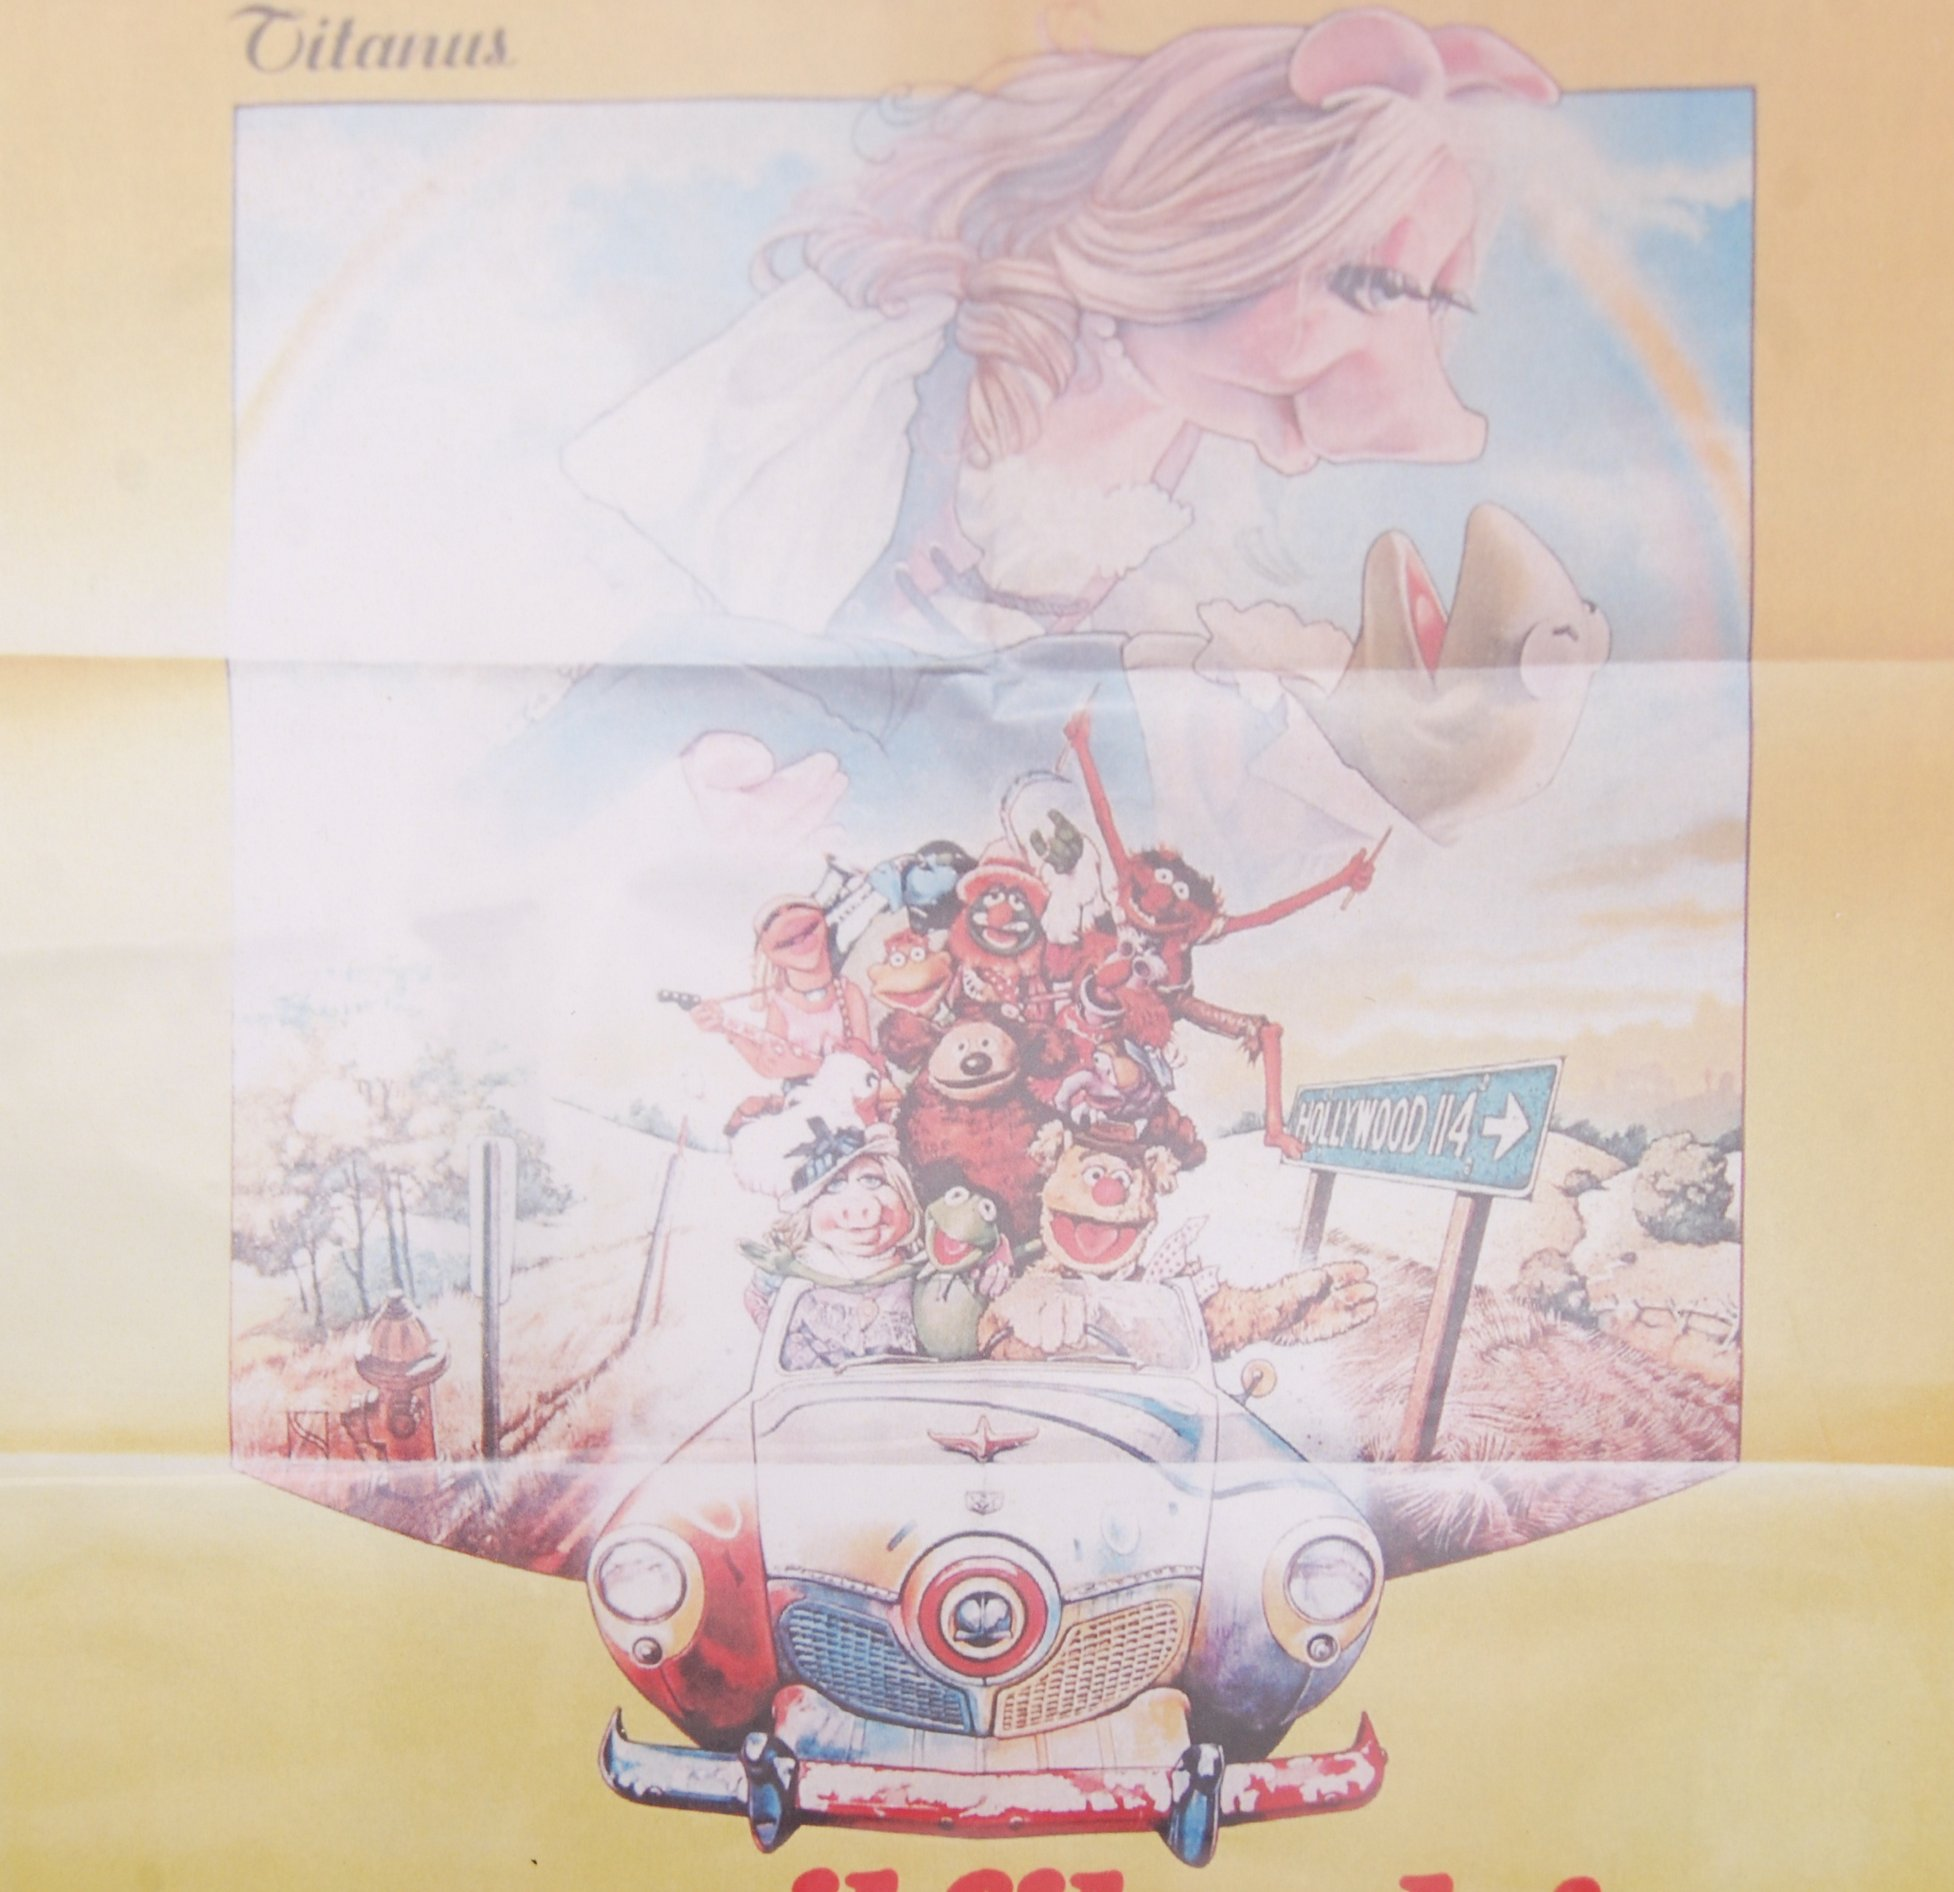 Lot 29 - THE MUPPETS MOVIE (1979) ITALIAN MOVIE ADVERTISING FILM POSTER